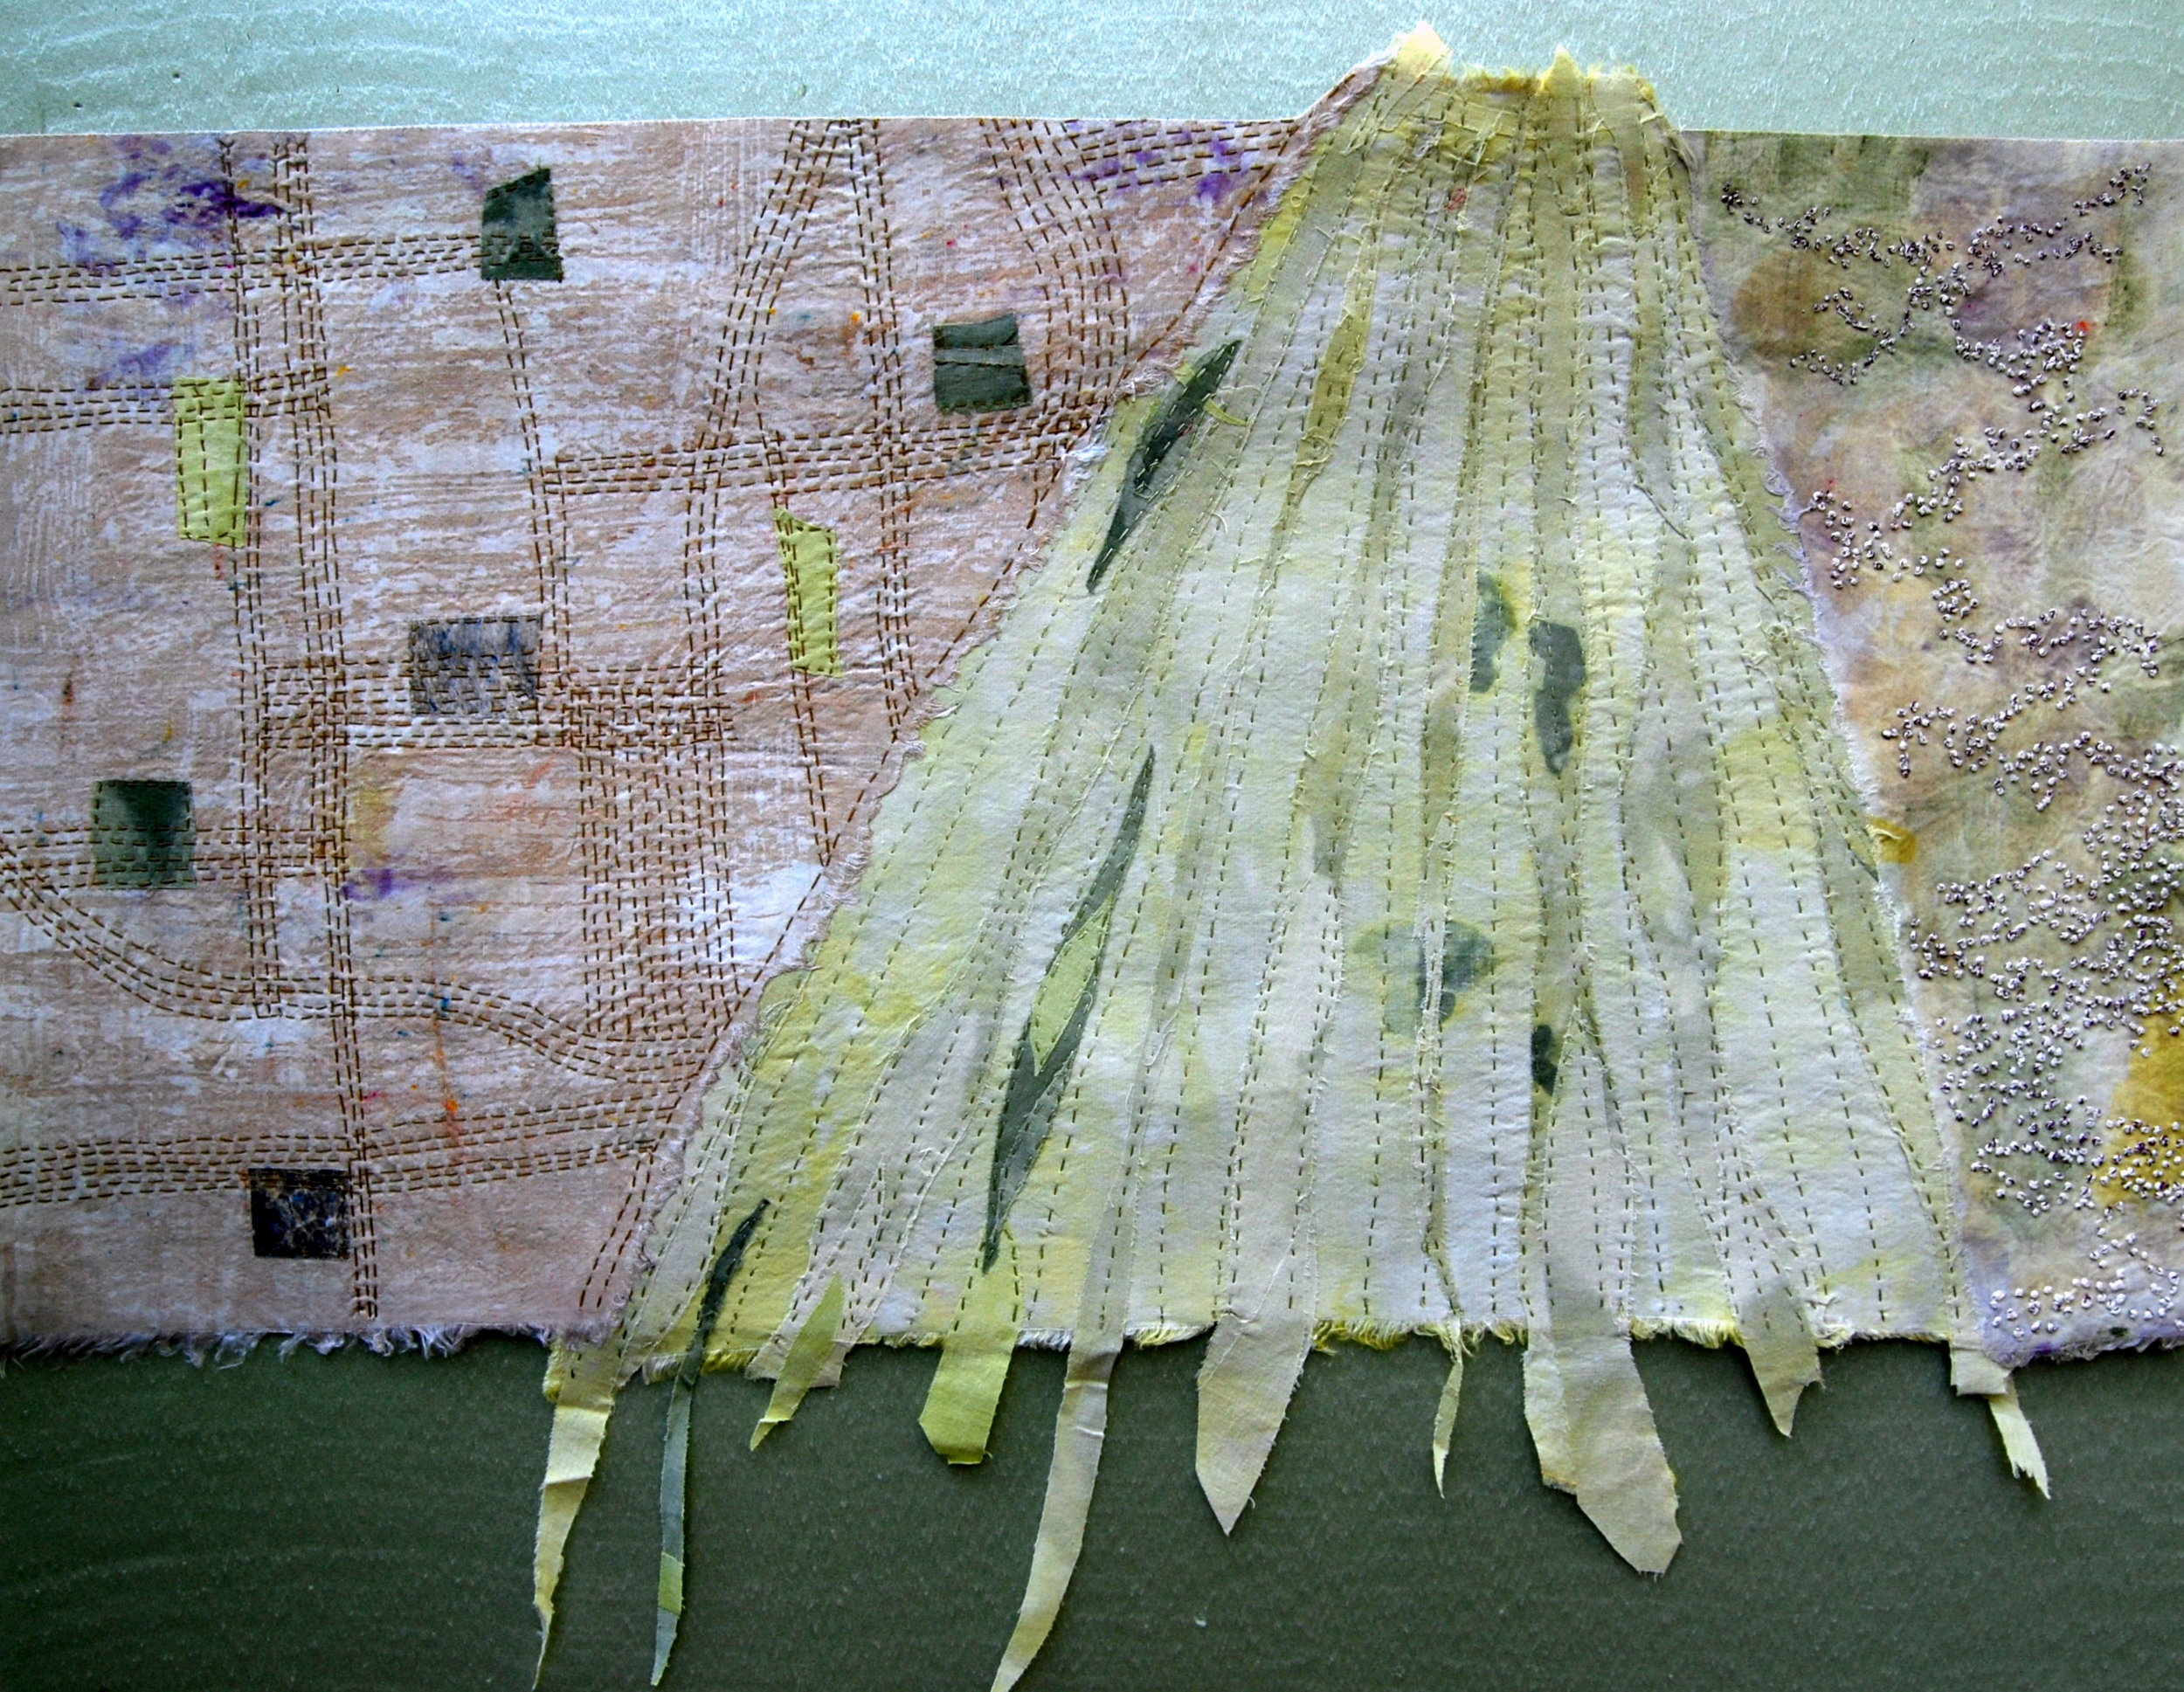 """Clover by the Salt River"" by Joanne Weis, Textile - Hemp, Hand Dyed, printed, appliqued and stitched, 40x22in, 2018, $400"